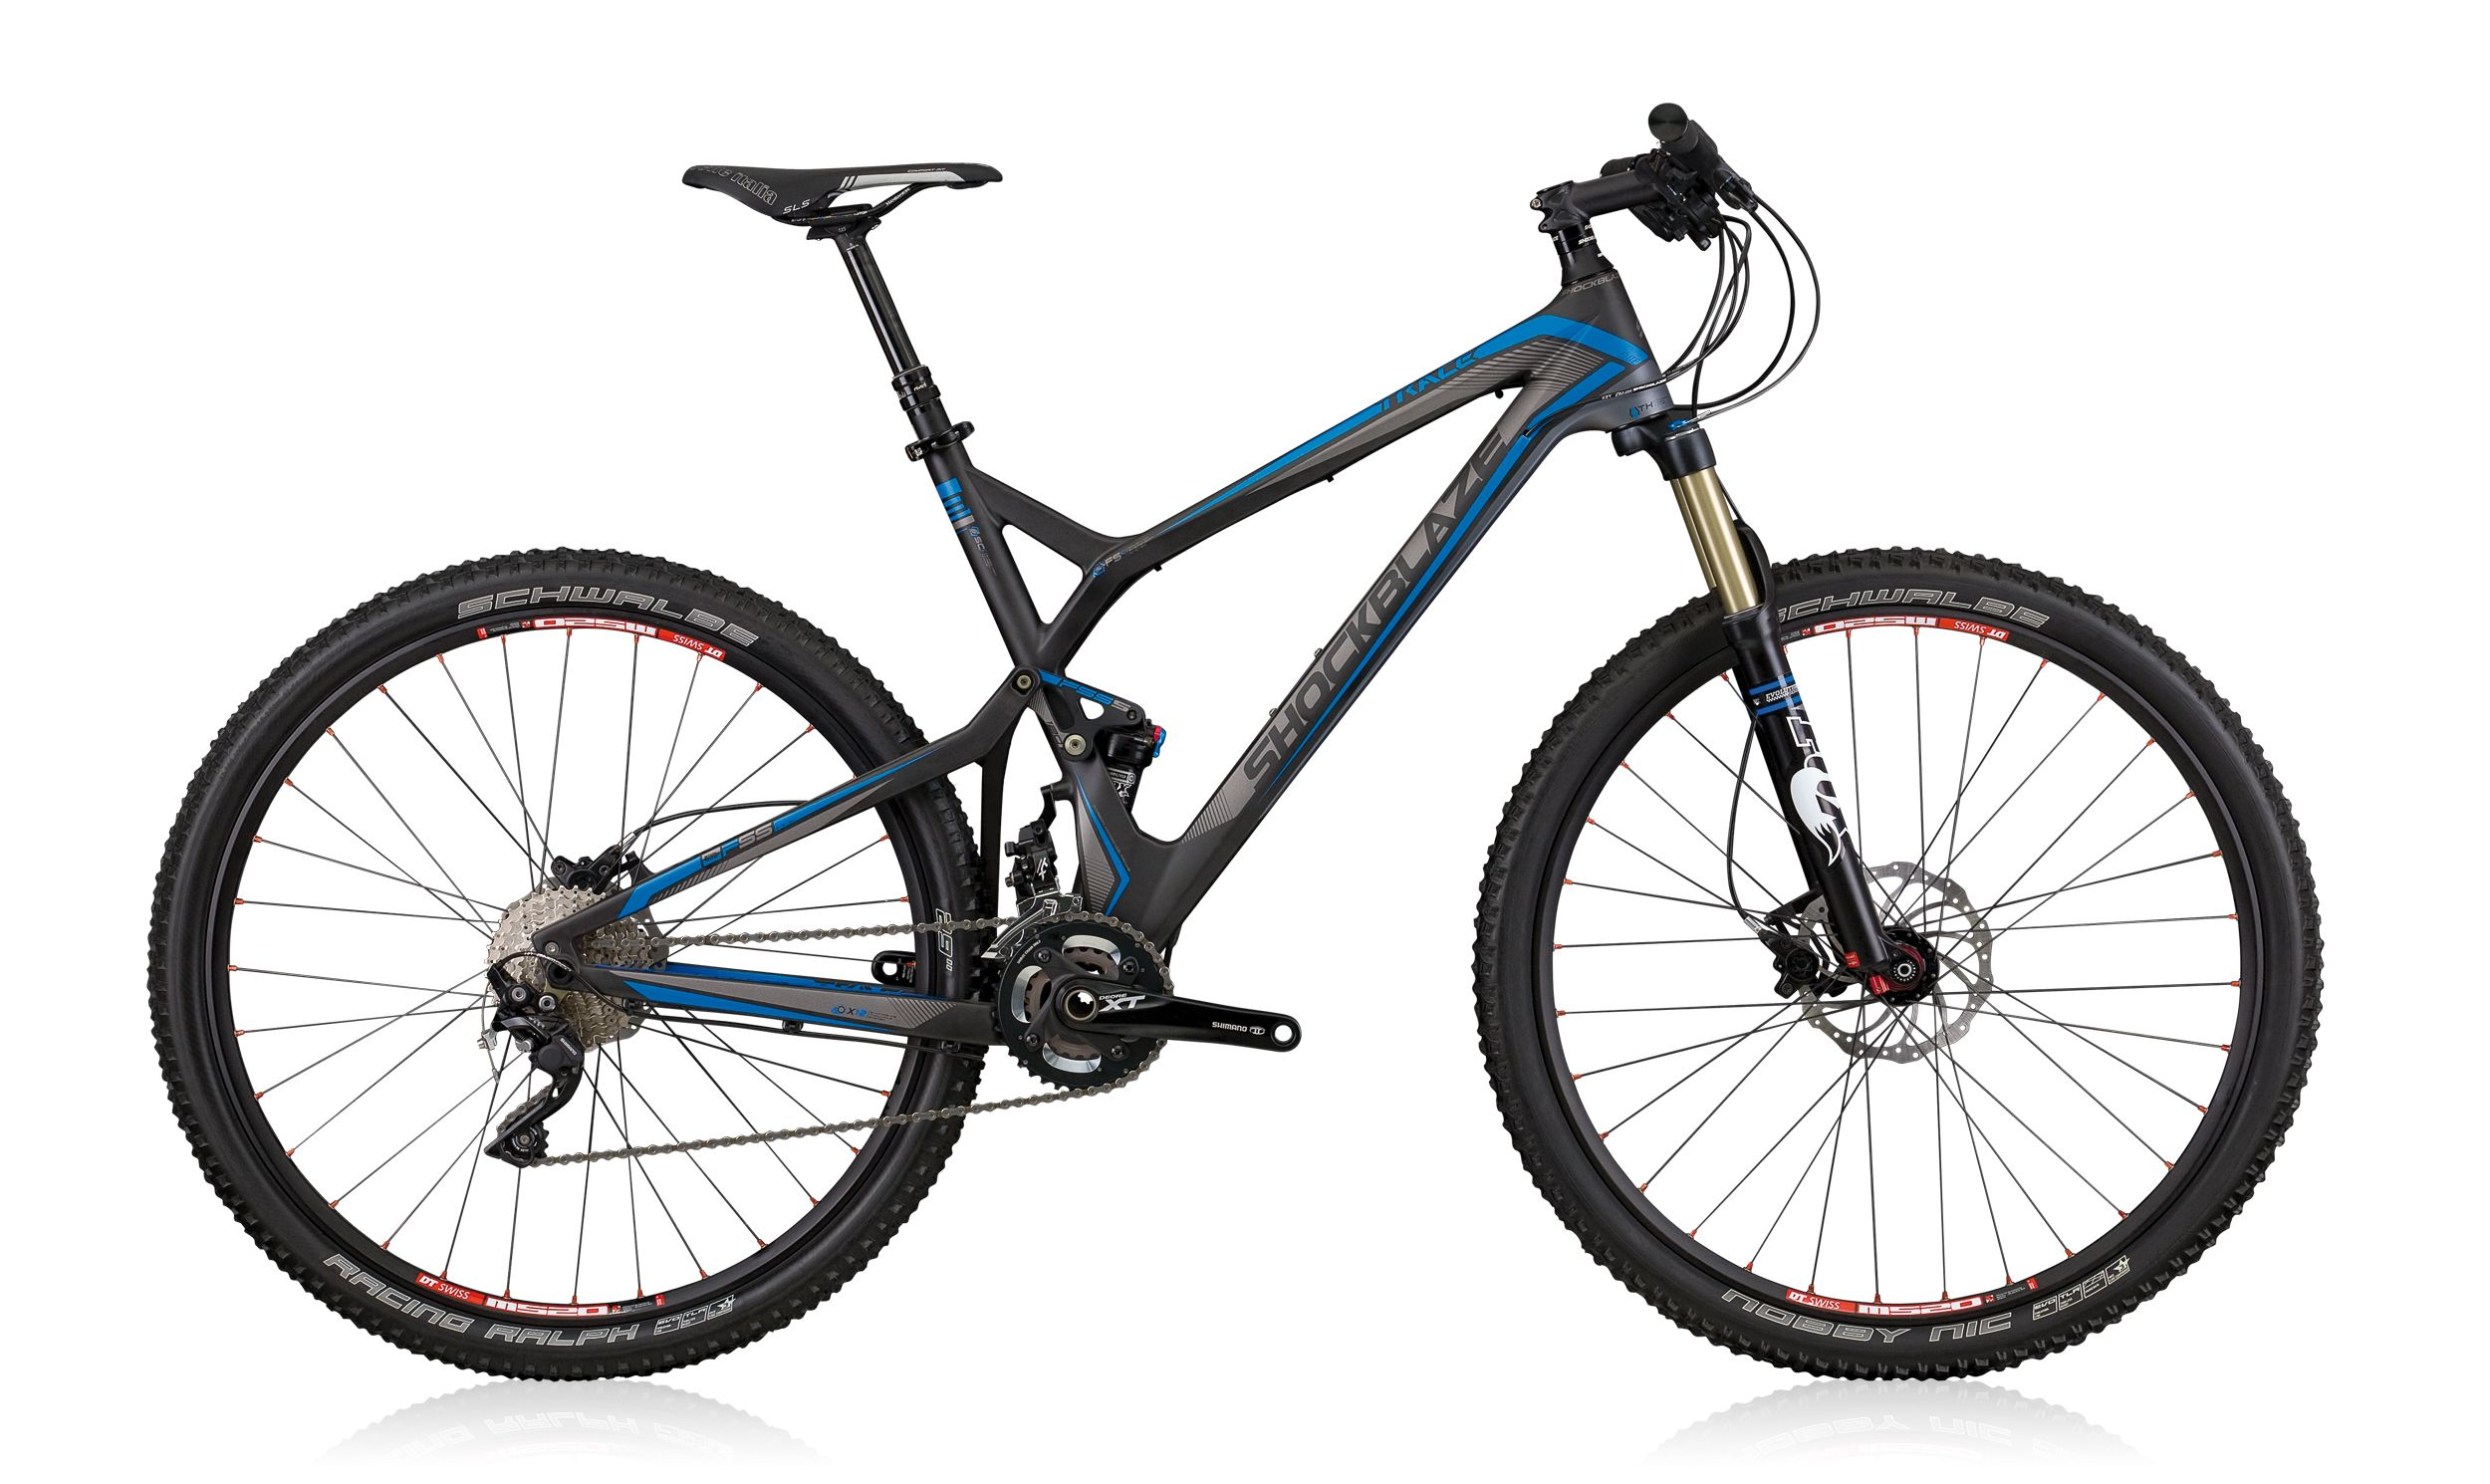 Trace Elite Carbon 29 Bicycle Bike Giant Bicycles